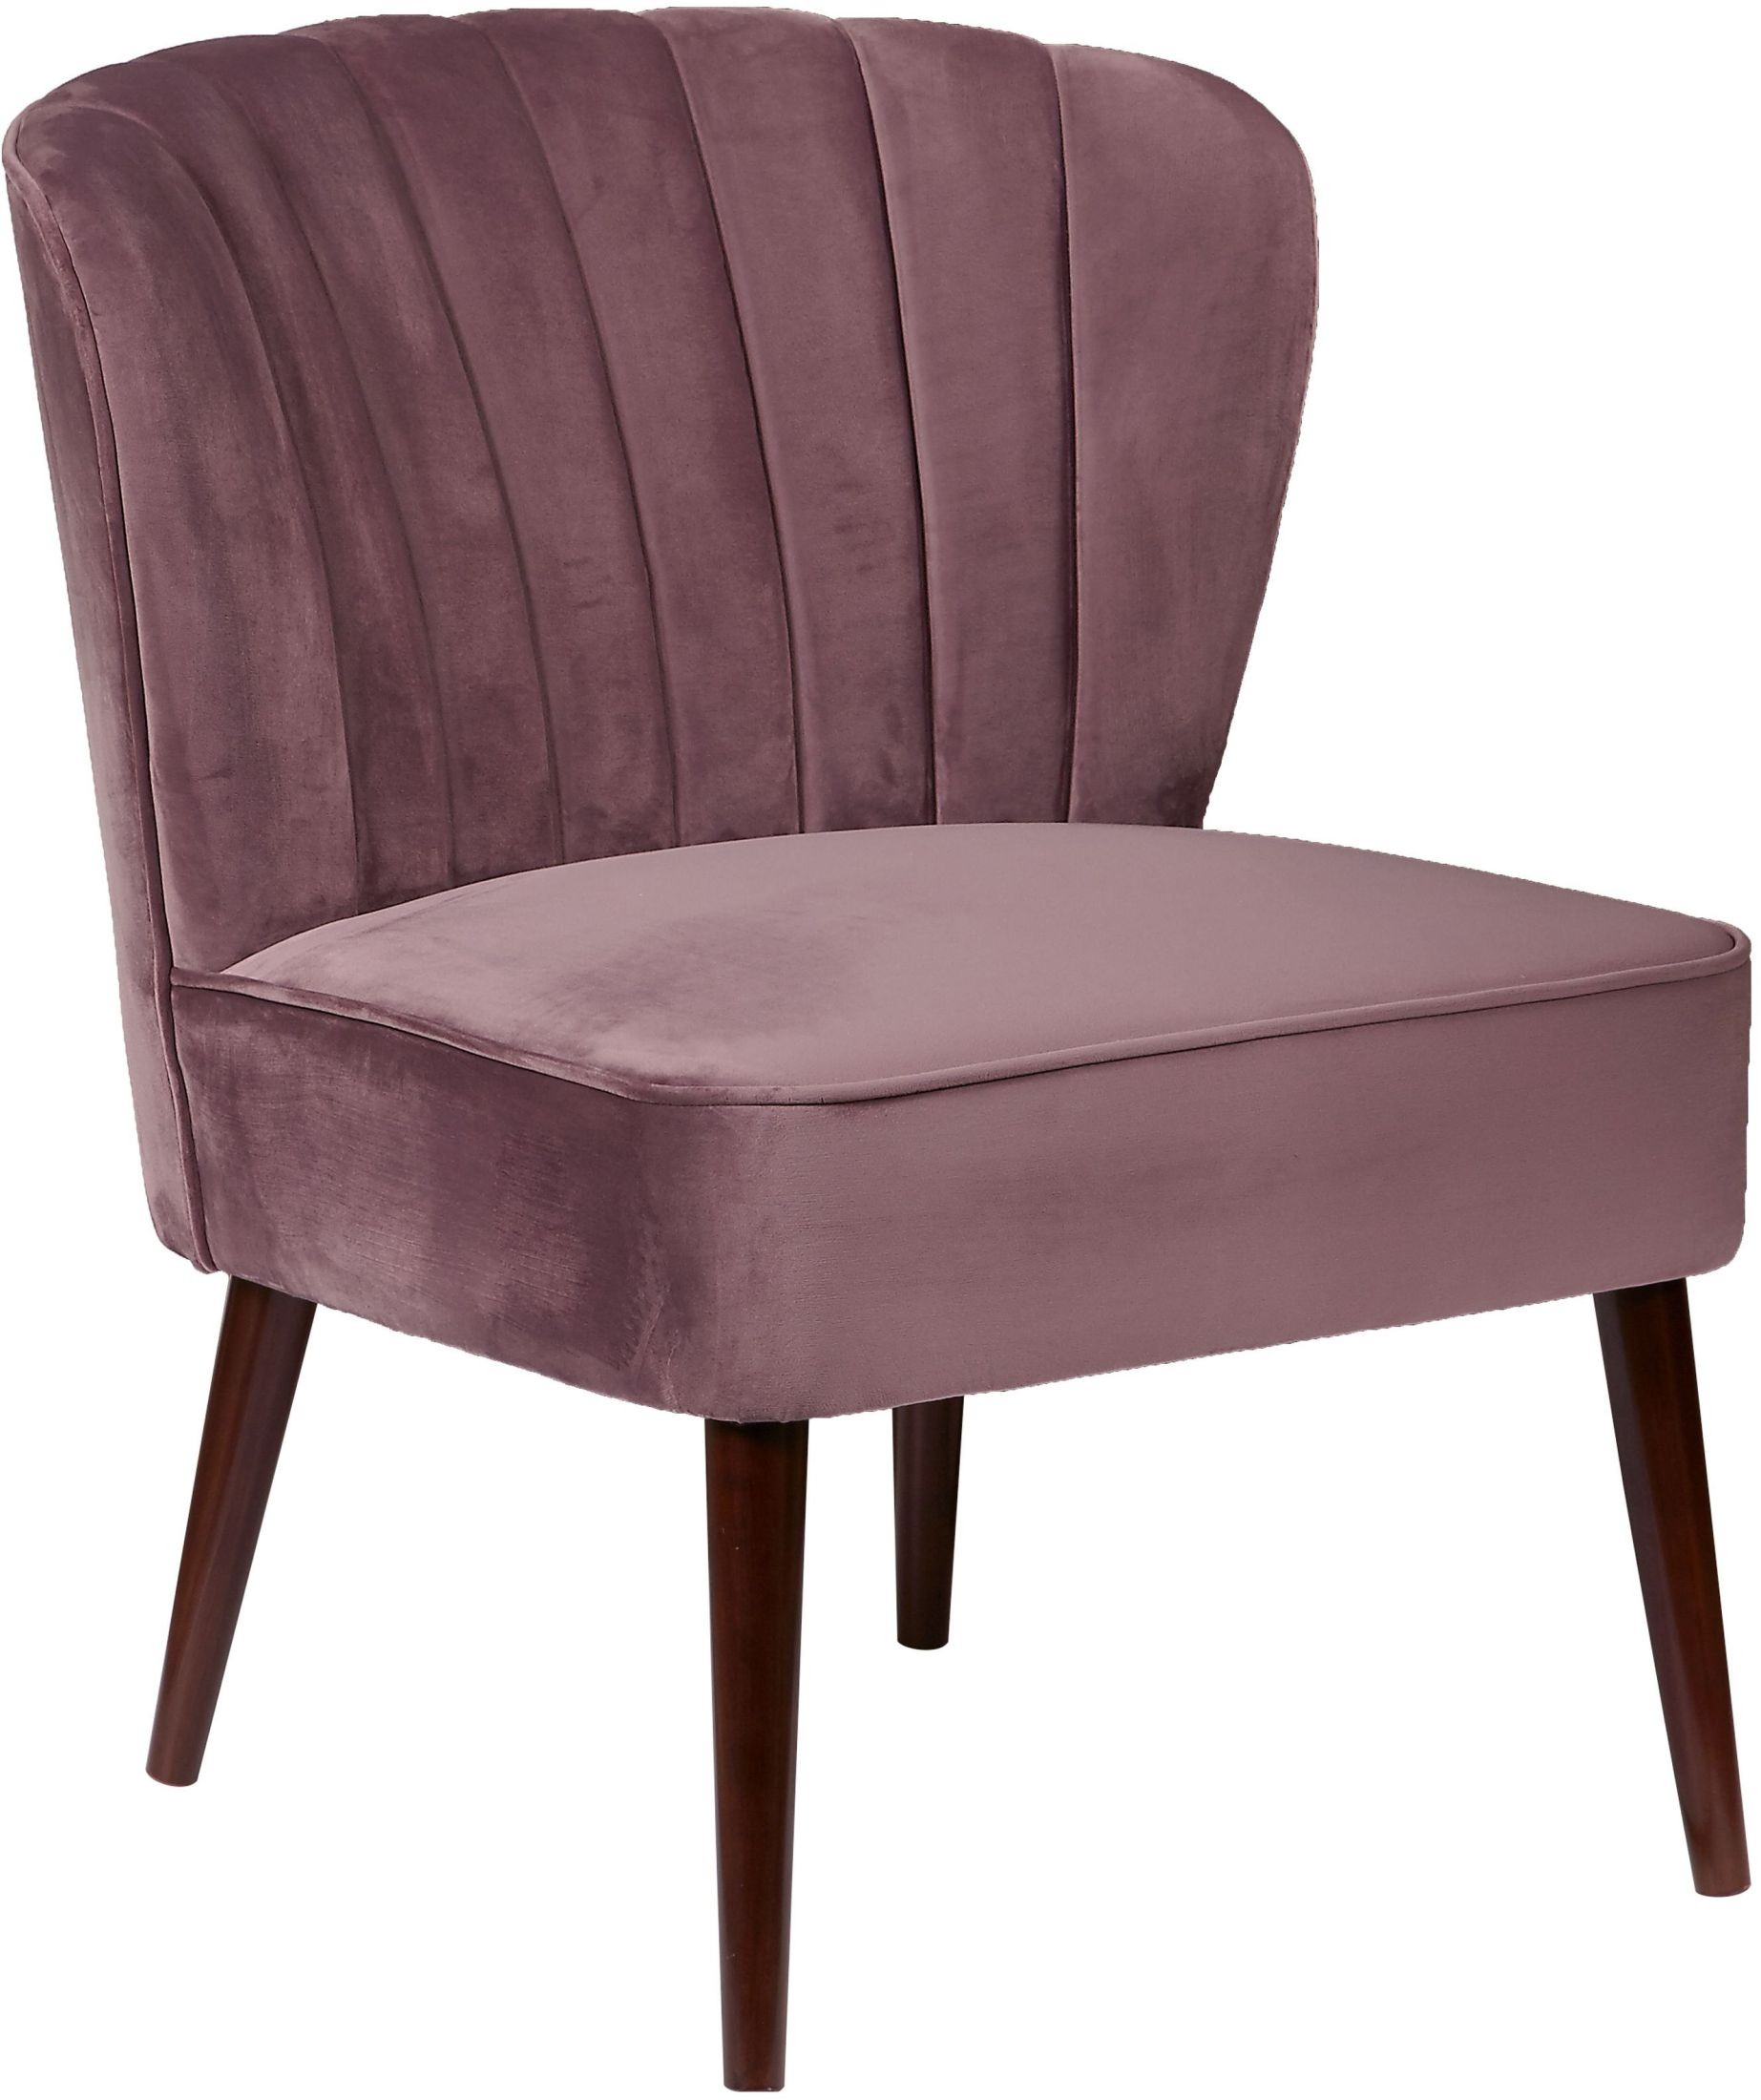 lilac office chair folding quad with footrest luxor channeled back armless accent from